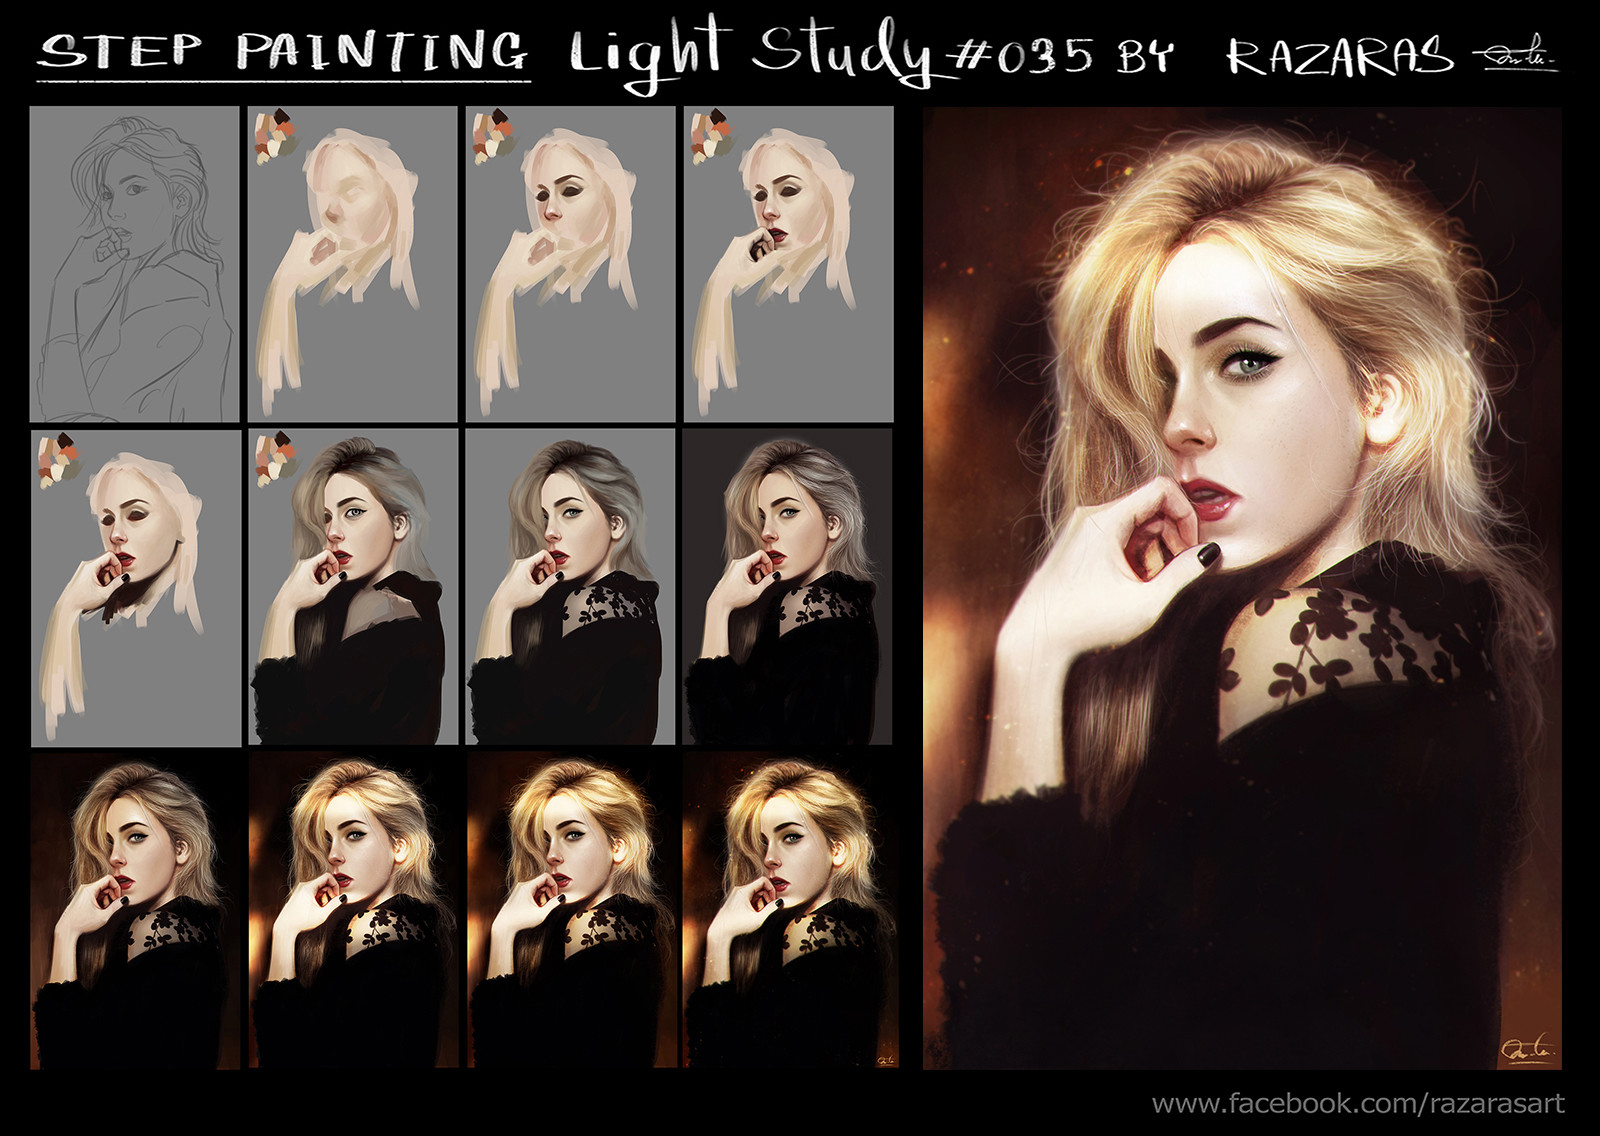 Kittichai reaungchaichan how to light study 035